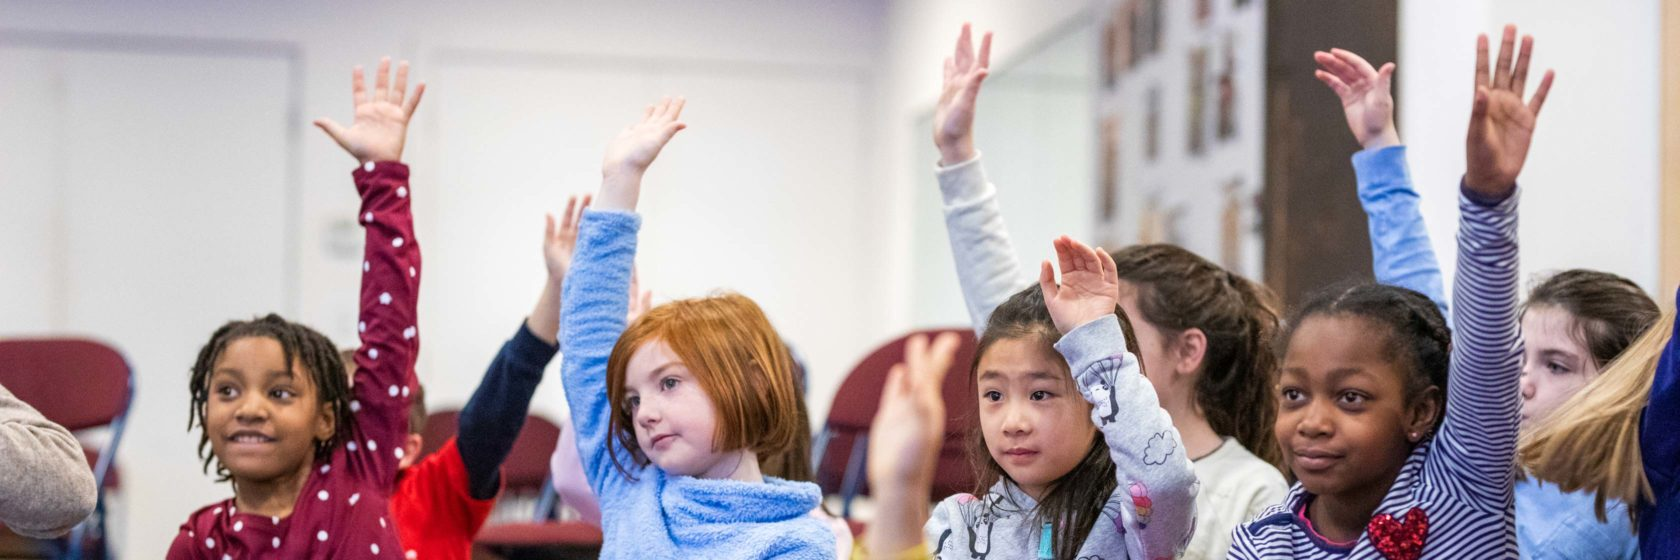 Students raising their hand in a classroom